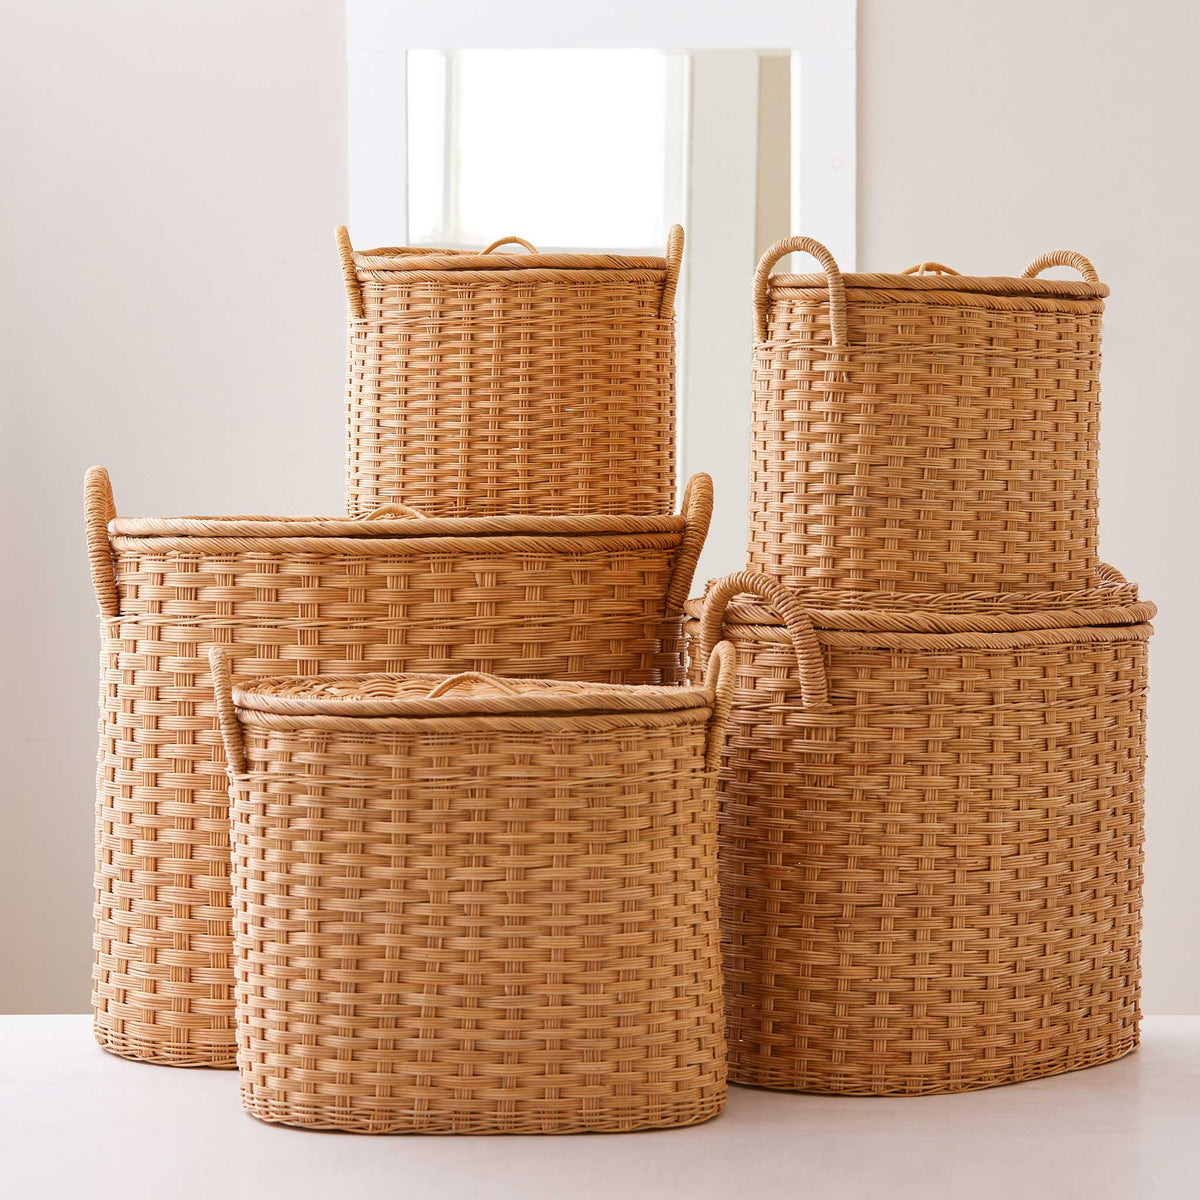 Oval rattan storage baskets. Unique storage baskets with lids and handles. 5 sizes from large storage baskets to small. Perfect baskets for shelves.